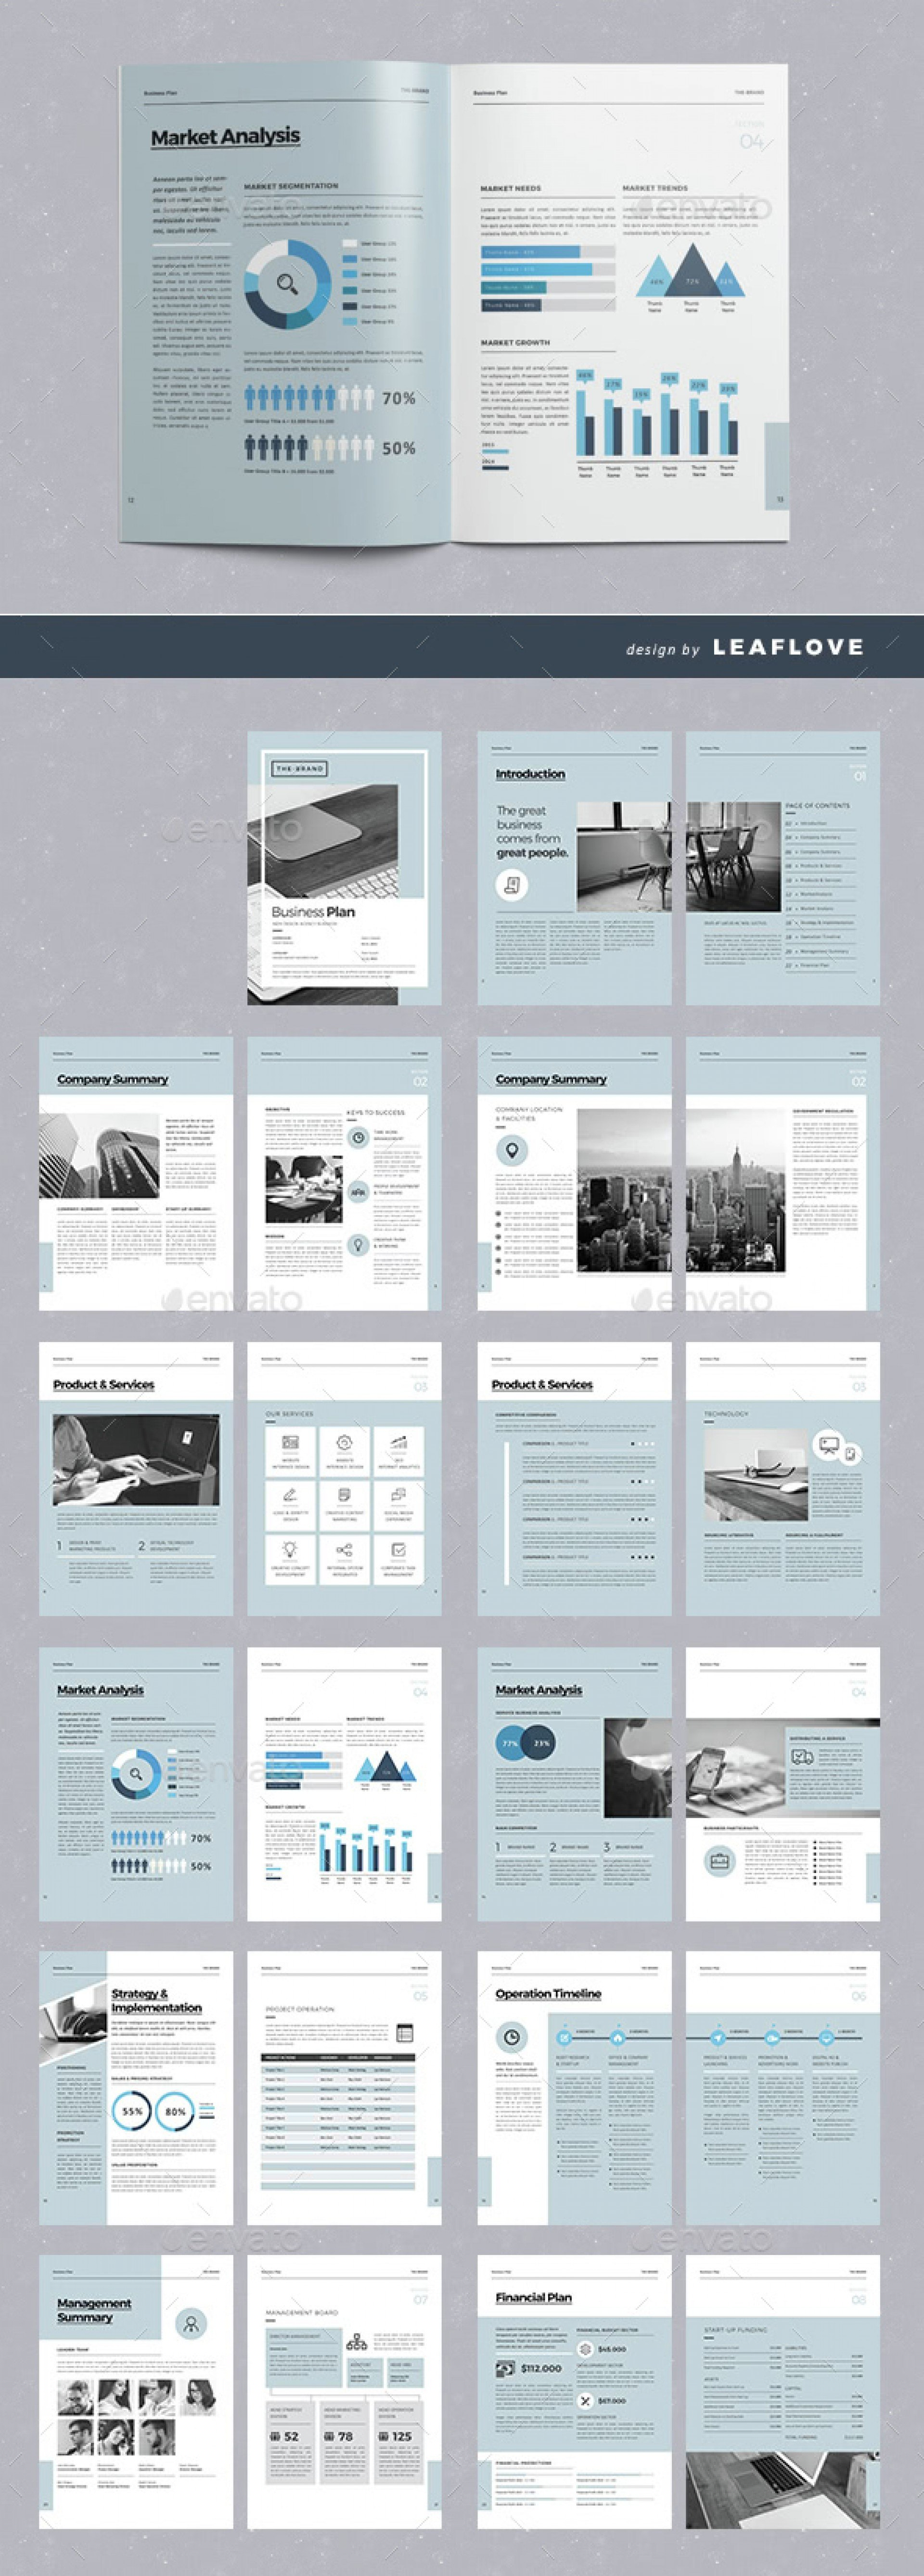 Indesign Business Plan Template   Amazing Templates Adobe Throughout Business Plan Template Indesign